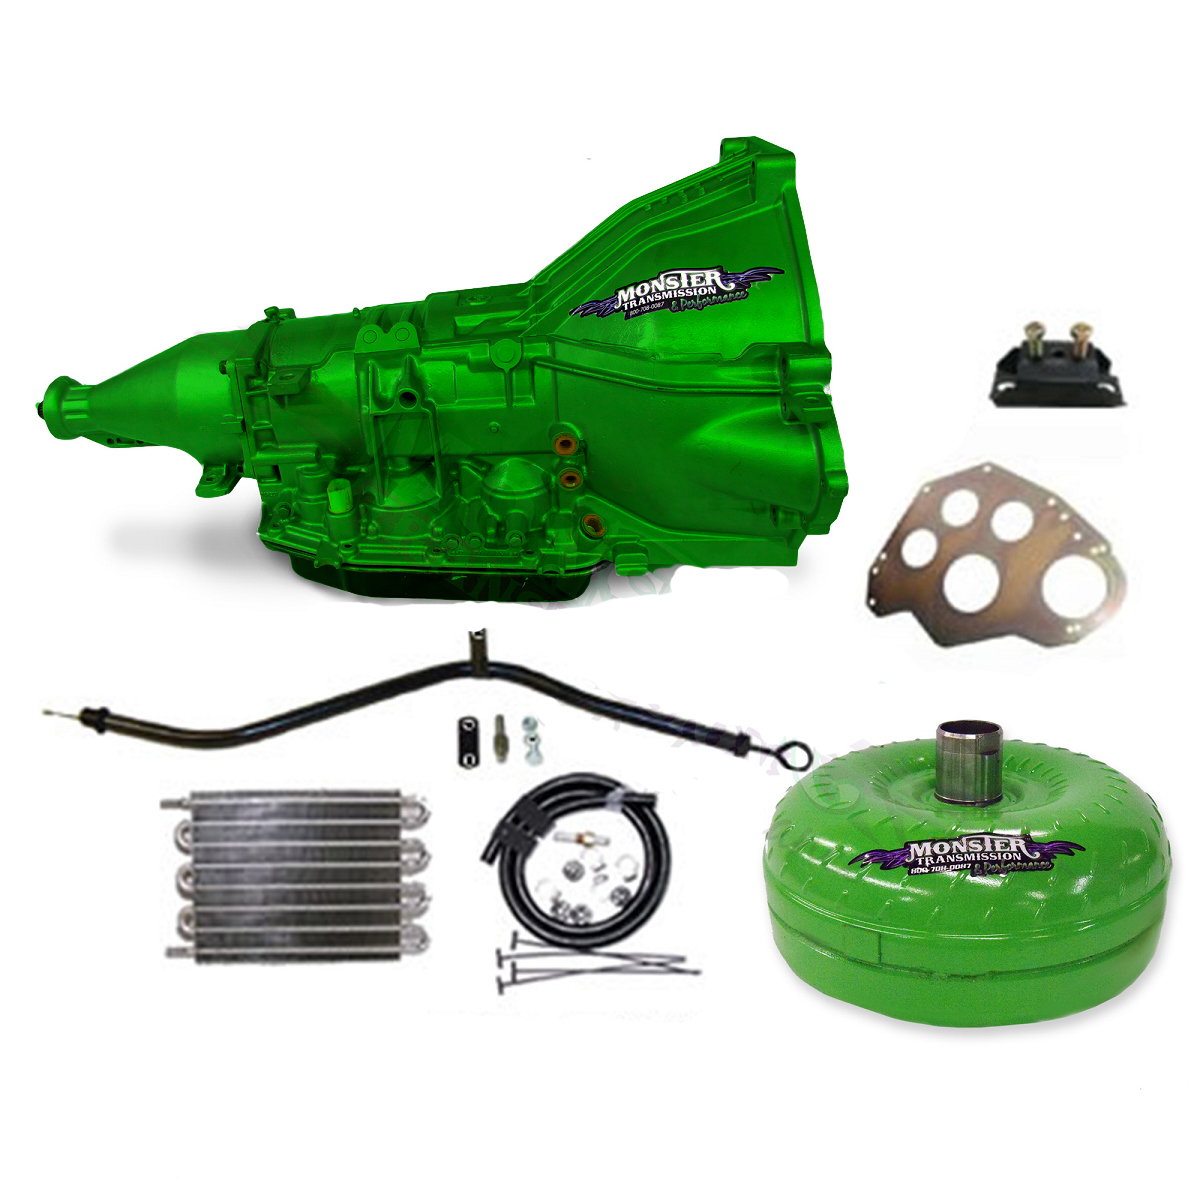 Ford Aod Ss Monster Transmission Master Conversion Package 2wd Green Other Colors Available Color Shades May Vary